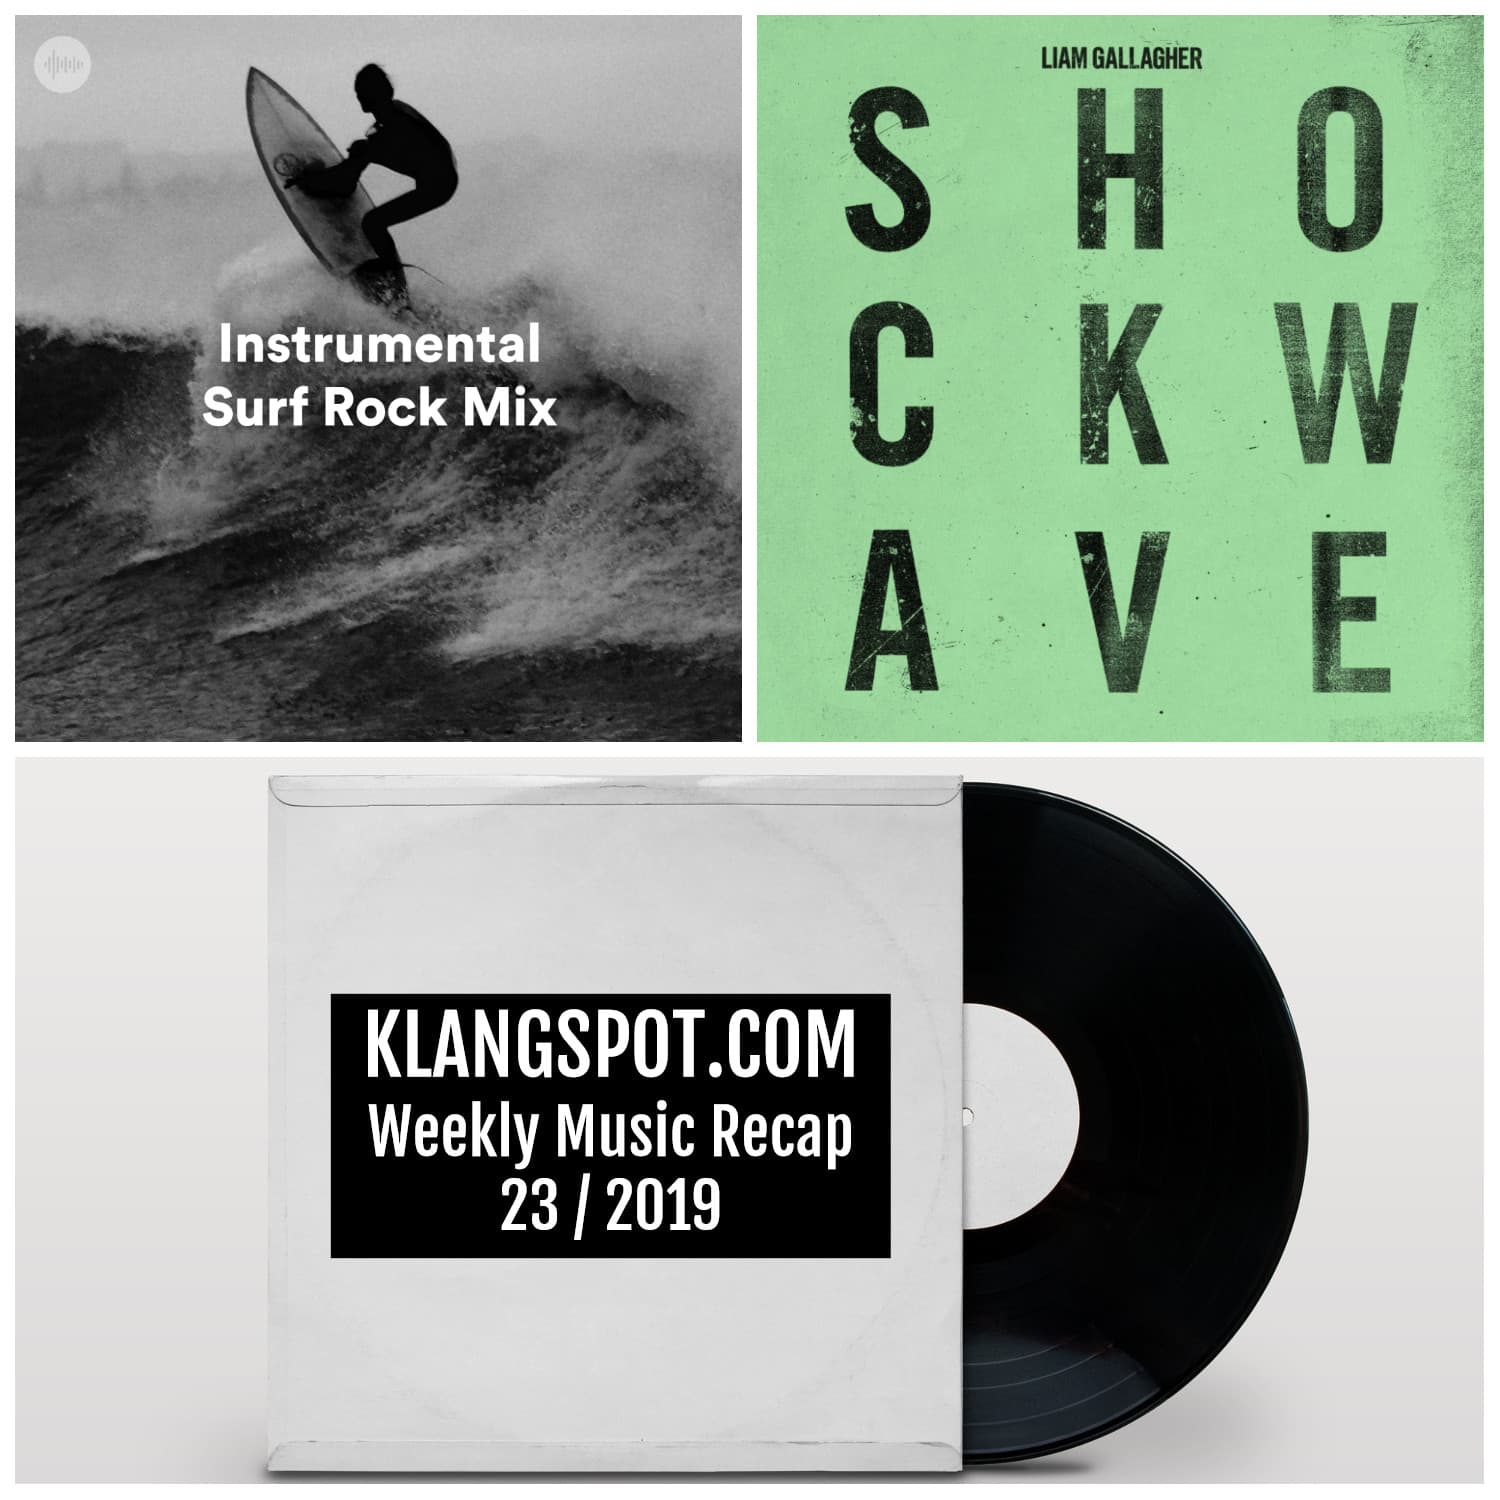 Weekly Music Recap | Week 23/2019: Instrumental Surf Rock Mix / Liam Gallagher - 'Shokwave'